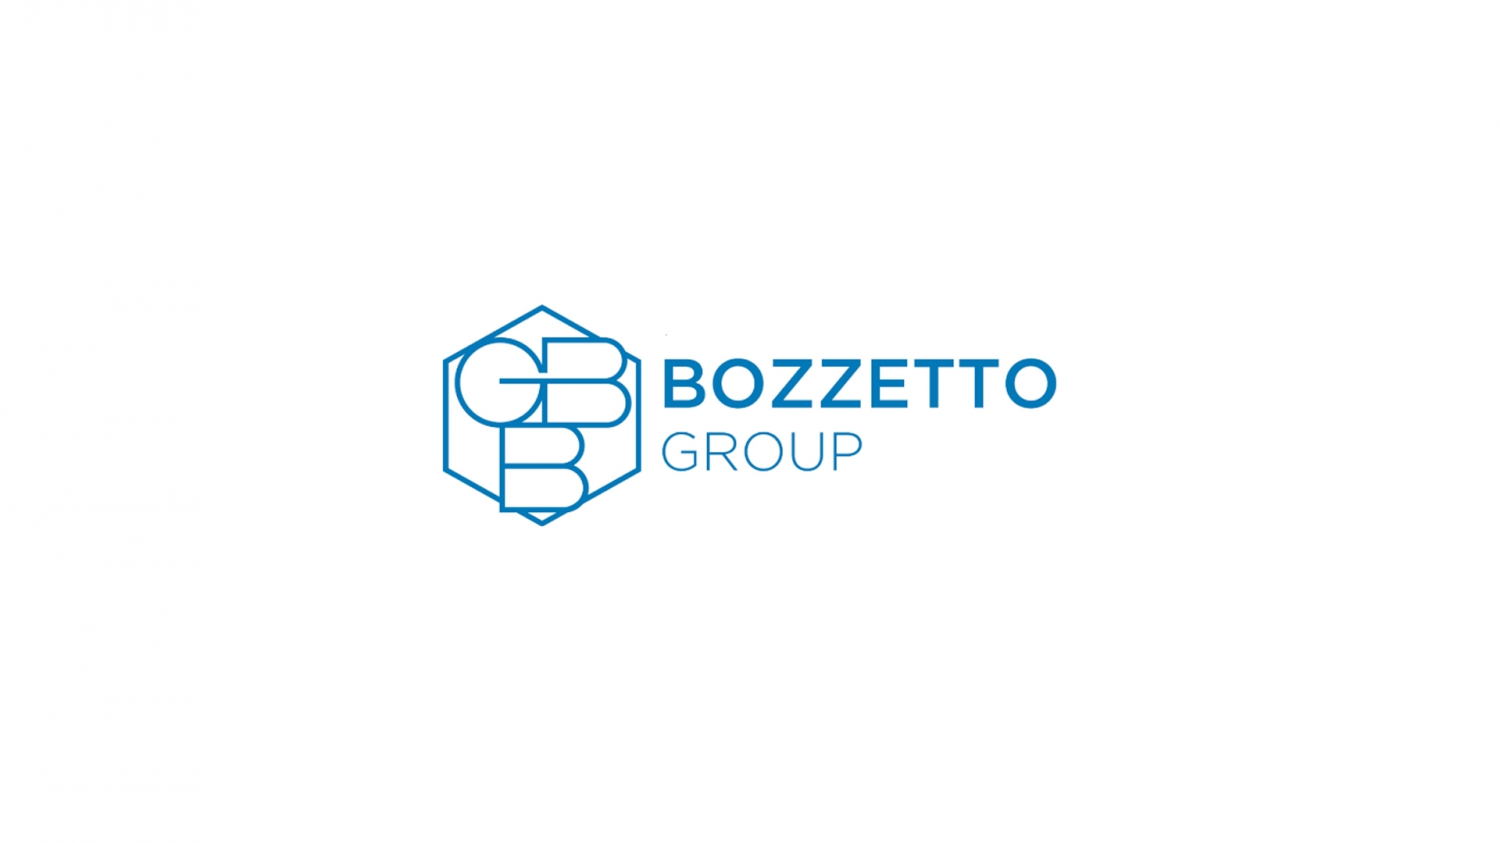 BOZETTO GROUP HEAD OFFICE